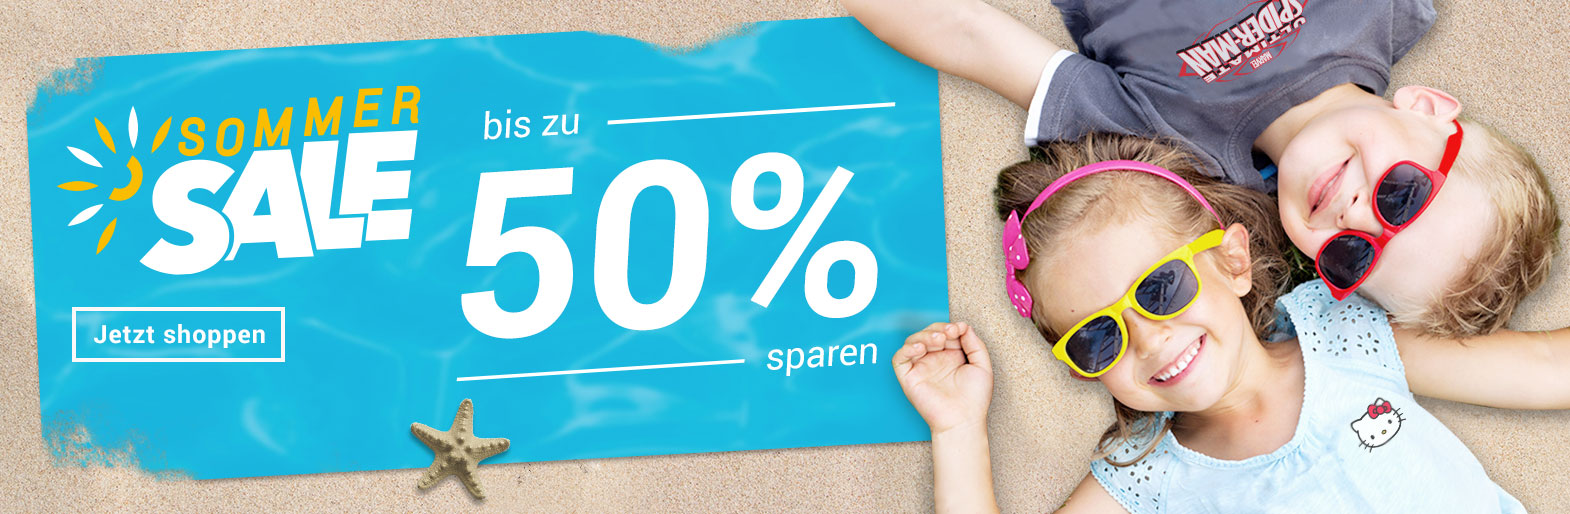 hp_main_summersale_de.